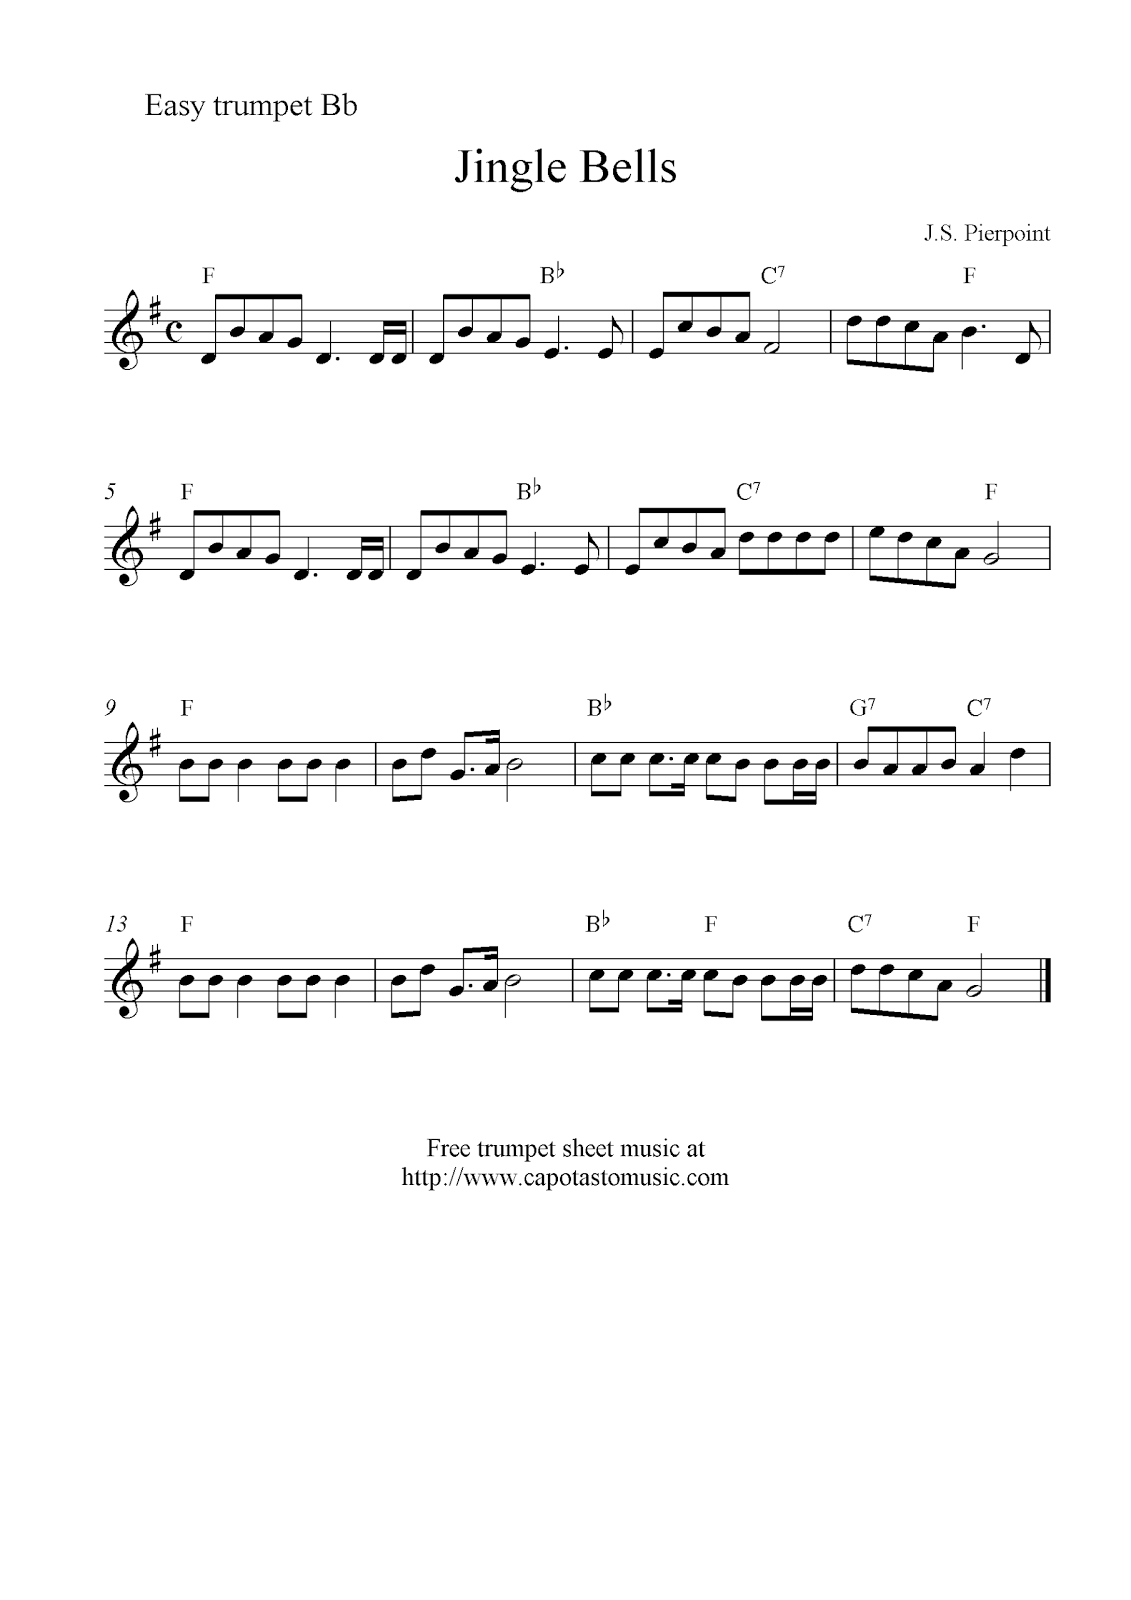 Jingle bells free christmas trumpet sheet music notes